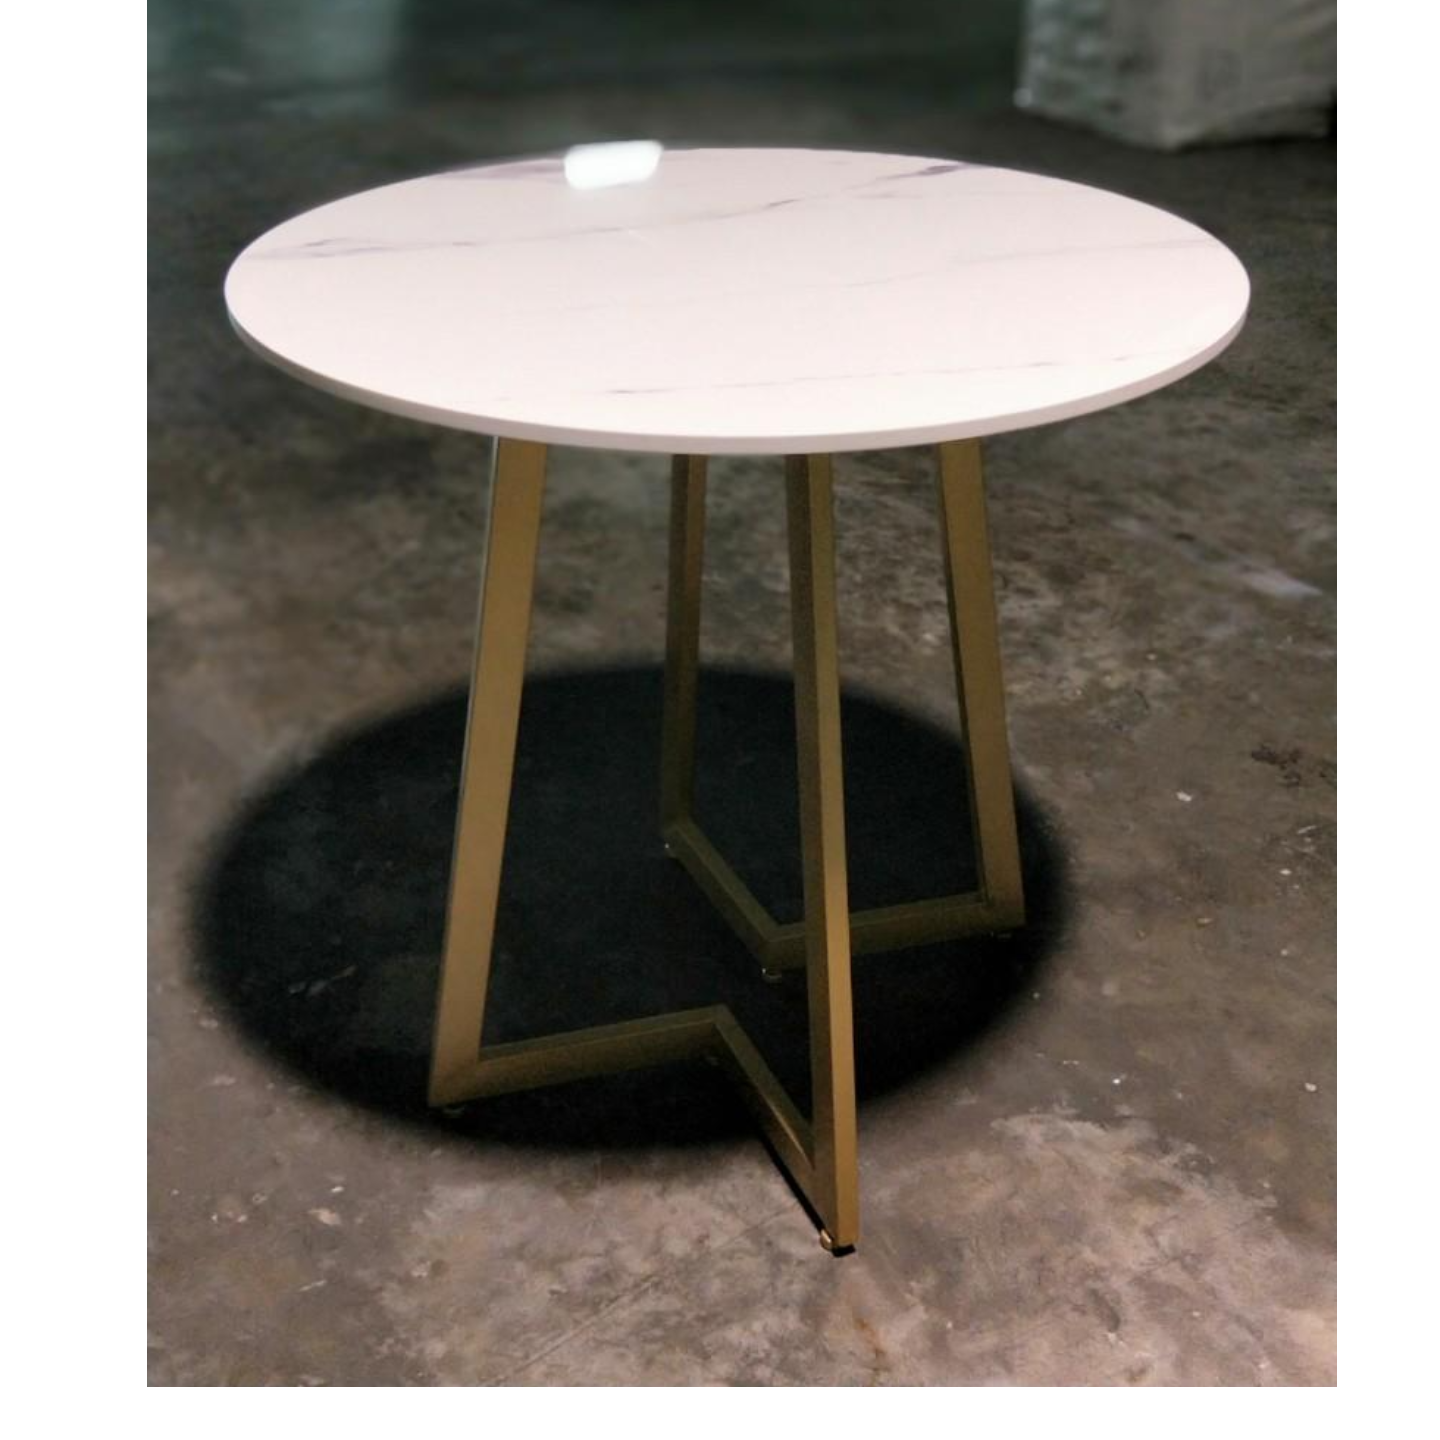 YELA Modern Round Marble Dining Table